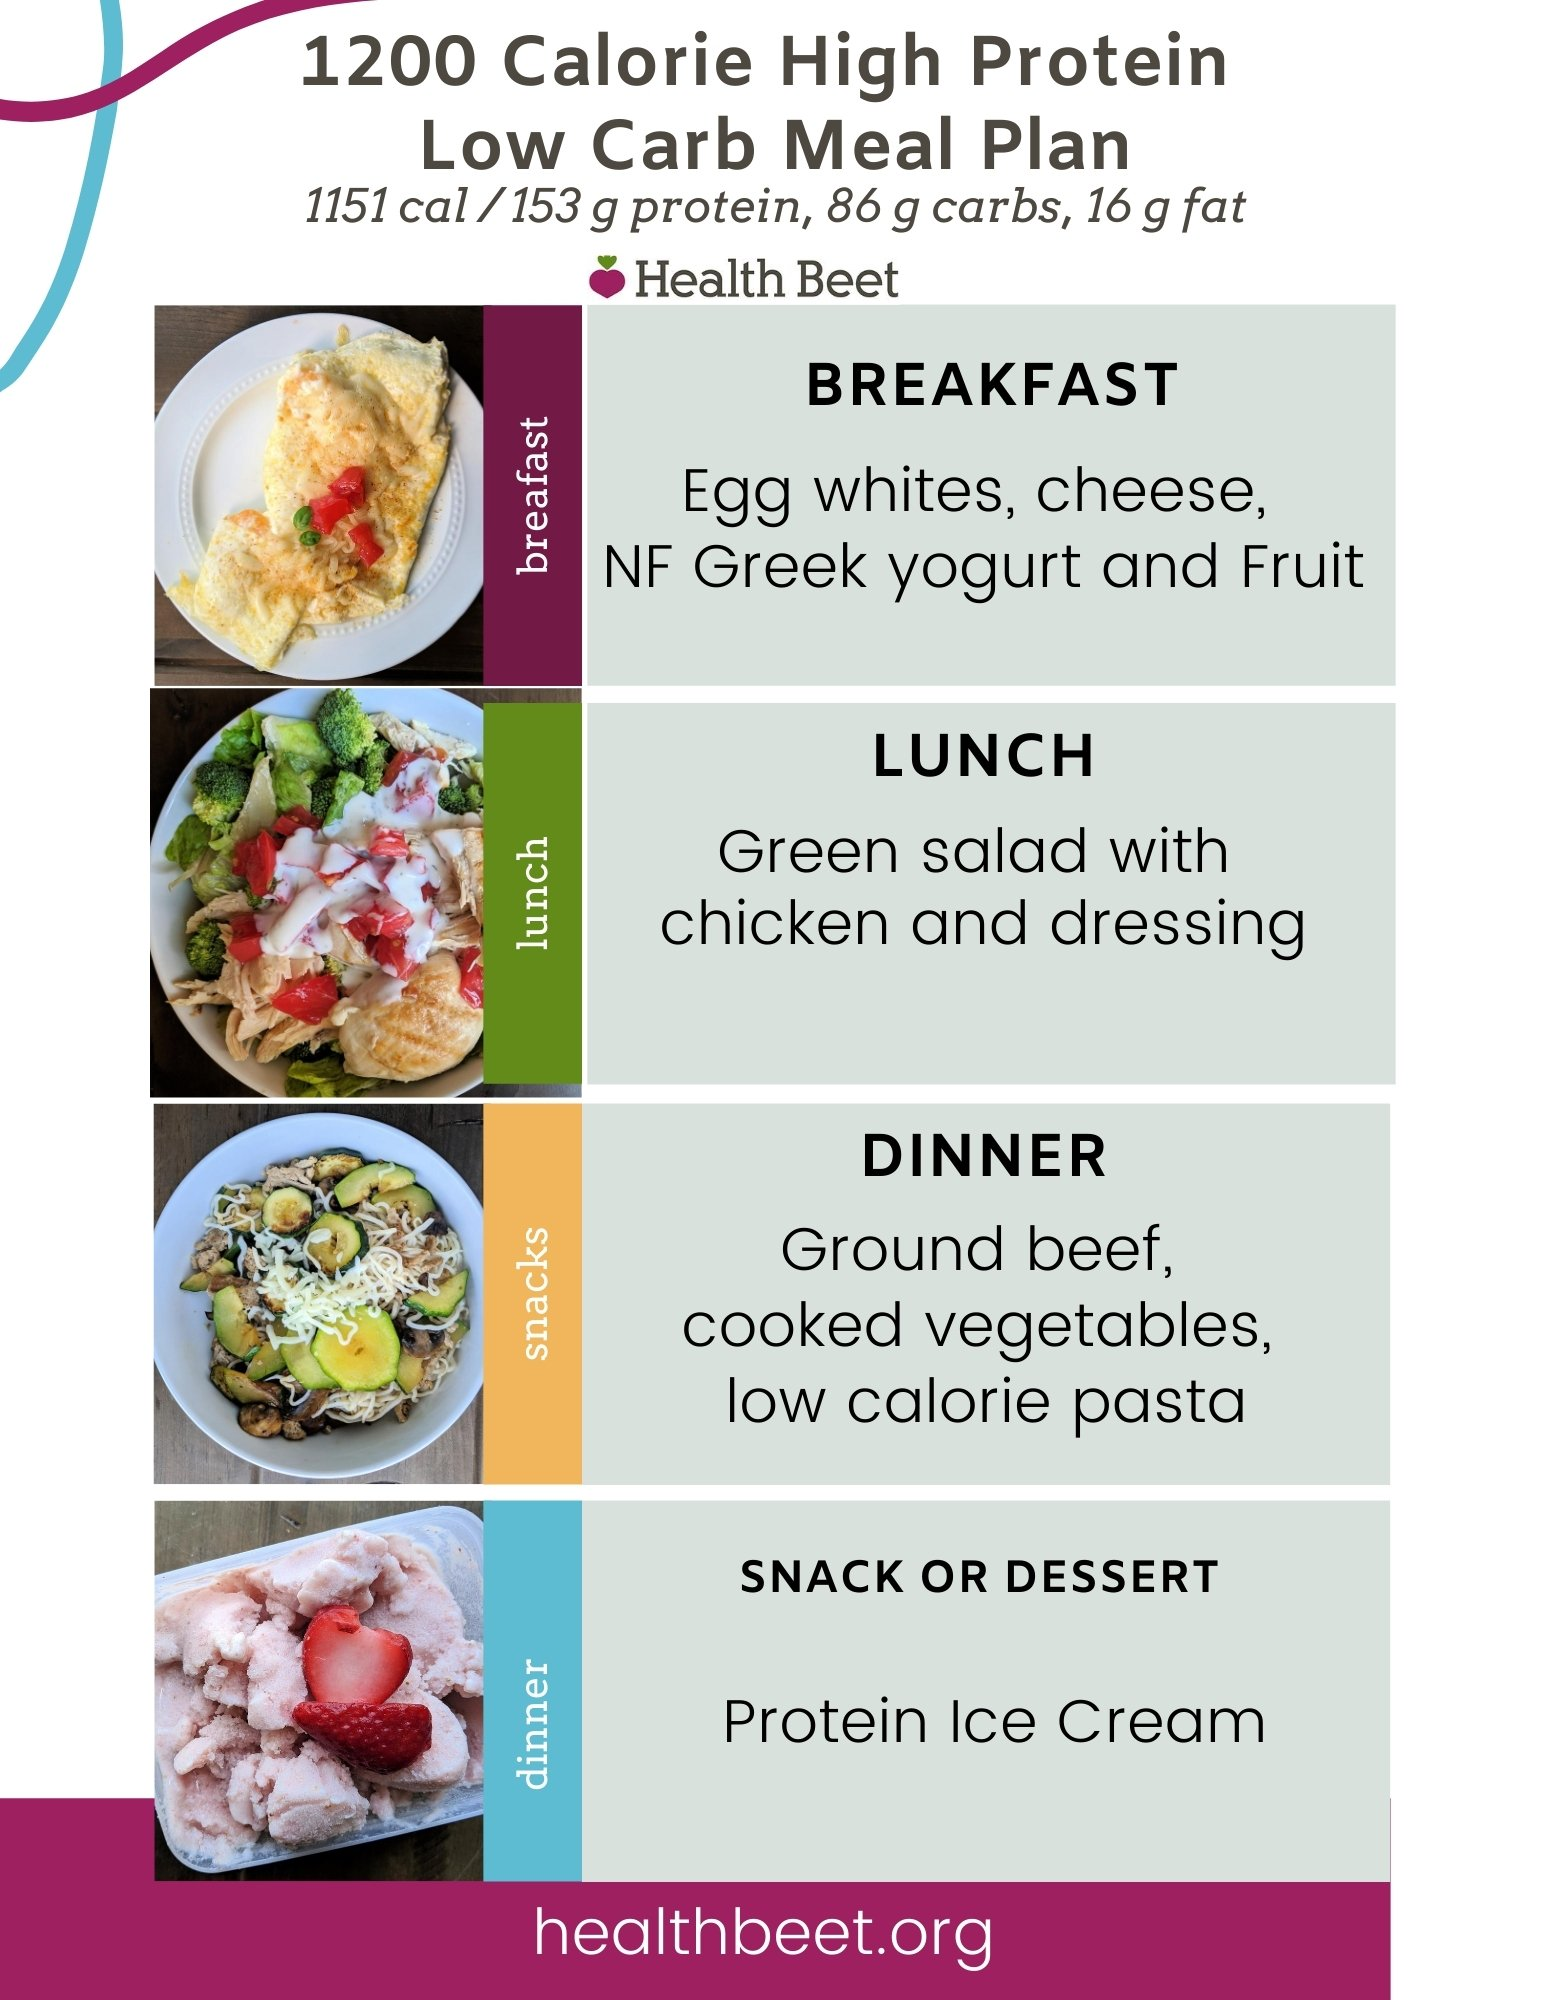 one day of meals for 1200 calorie high protein low carb meal plan